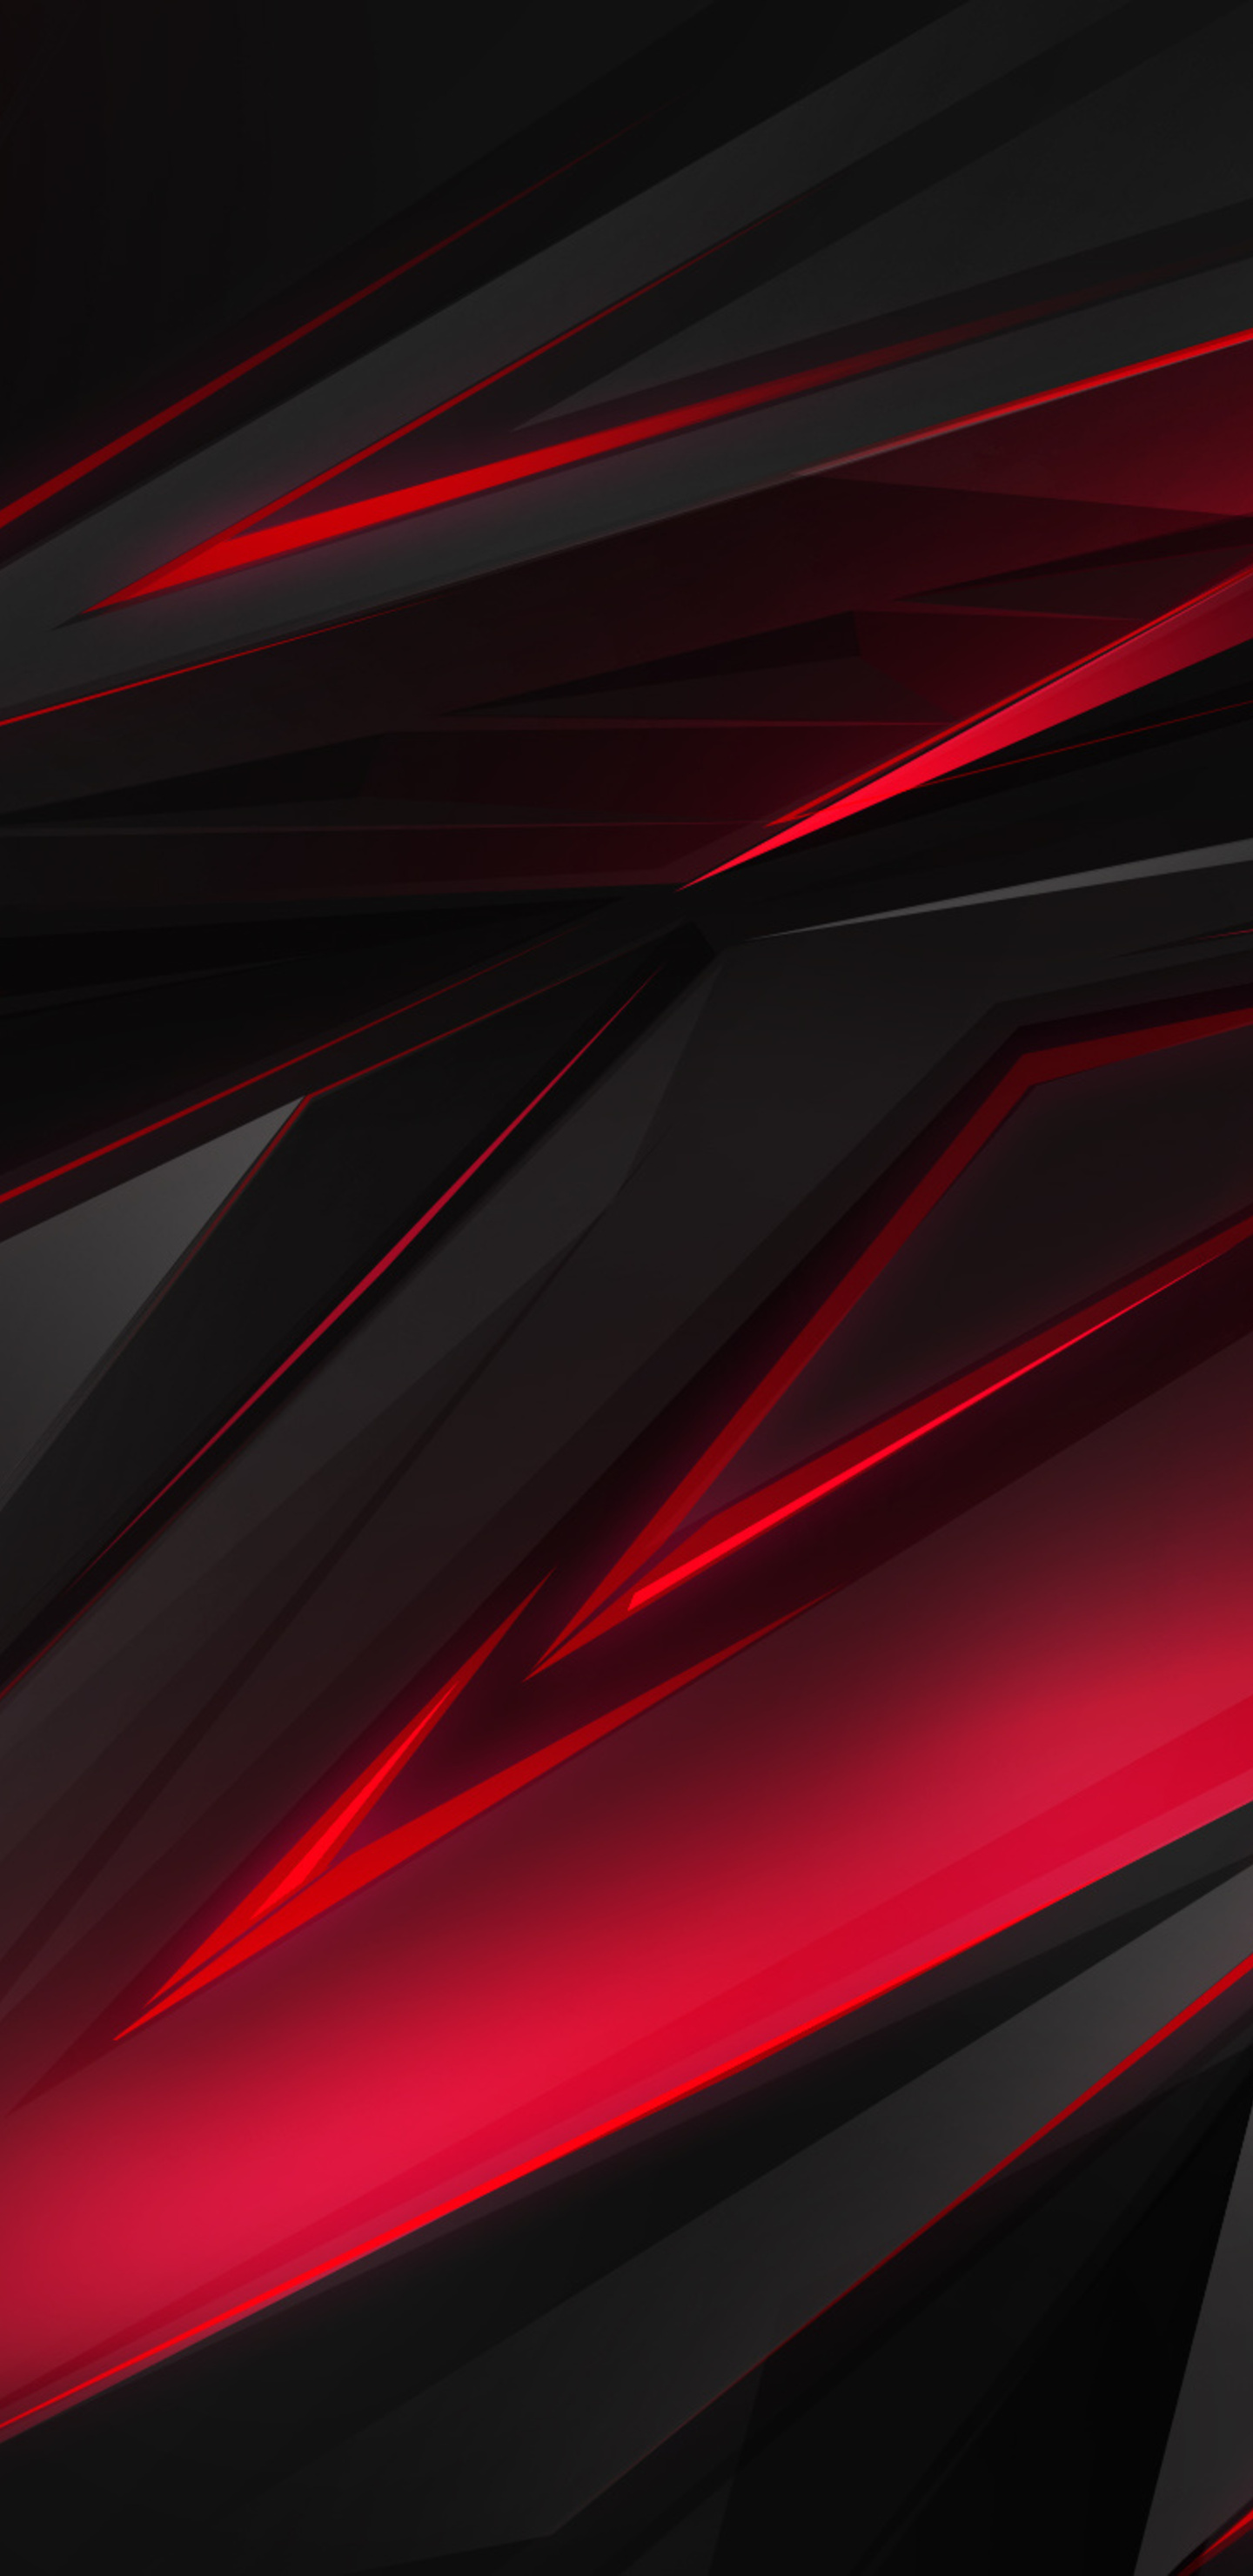 1440x2960 Polygonal Abstract Red Dark Background Samsung Galaxy Note